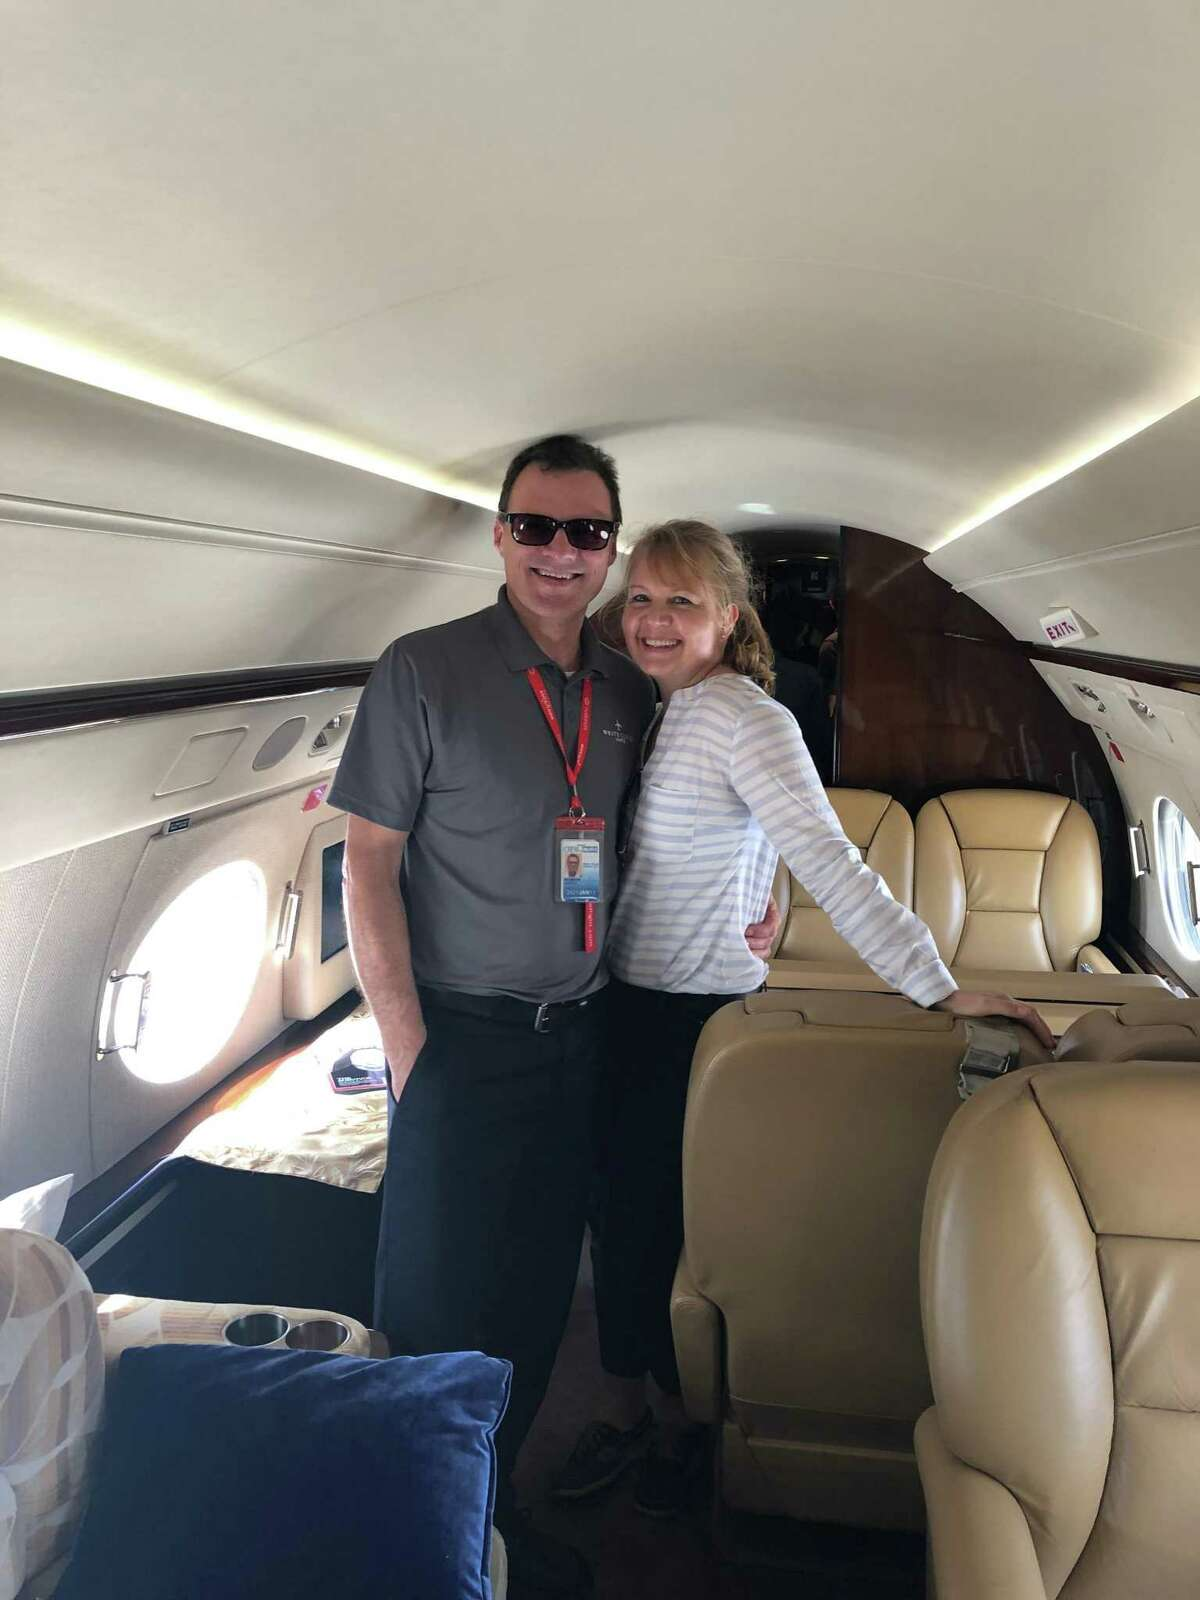 Mark Morrow, left with his wife, Dunja Morrow, right. Pilot Mark Morrow, 57, of Danbury, was one of four people killed in a plane crash in Farmington on Thursday, Sept. 2, 2021.